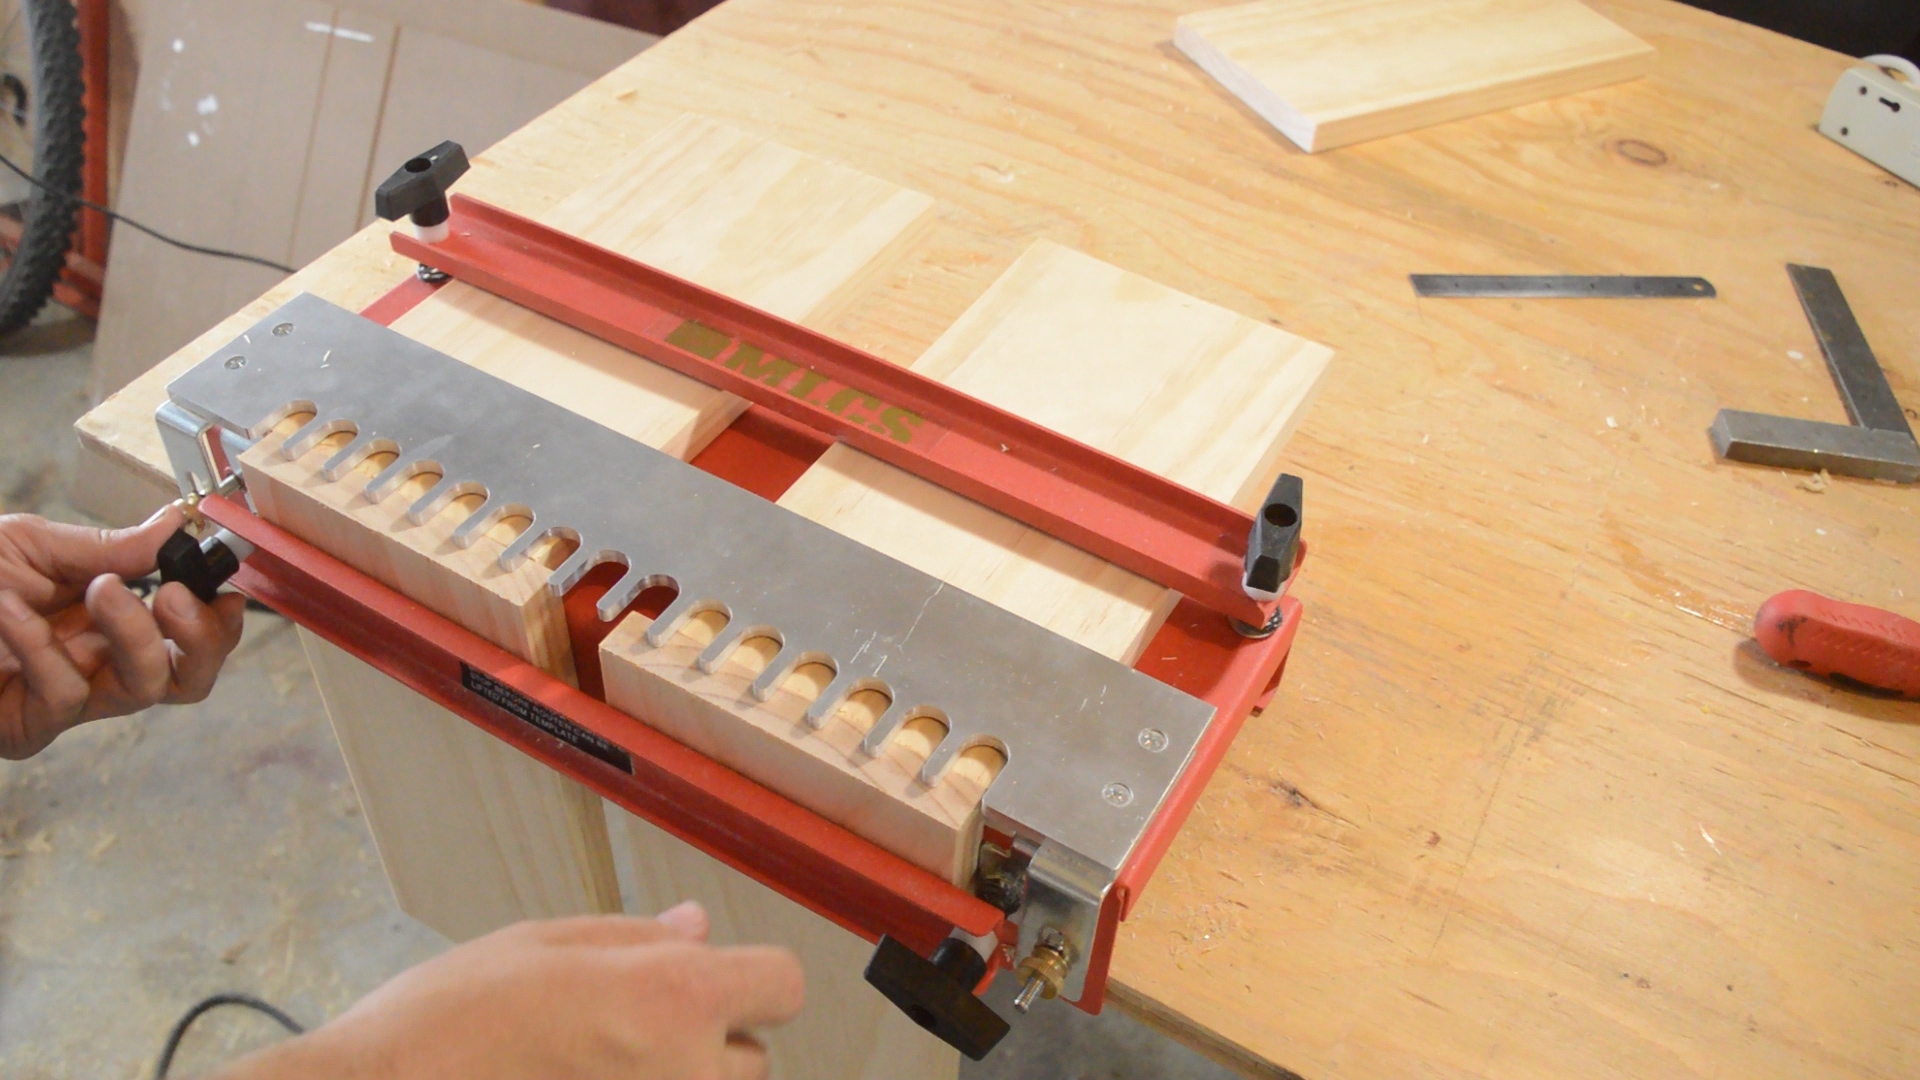 The MLCS Dovetail Jig: How To Use It